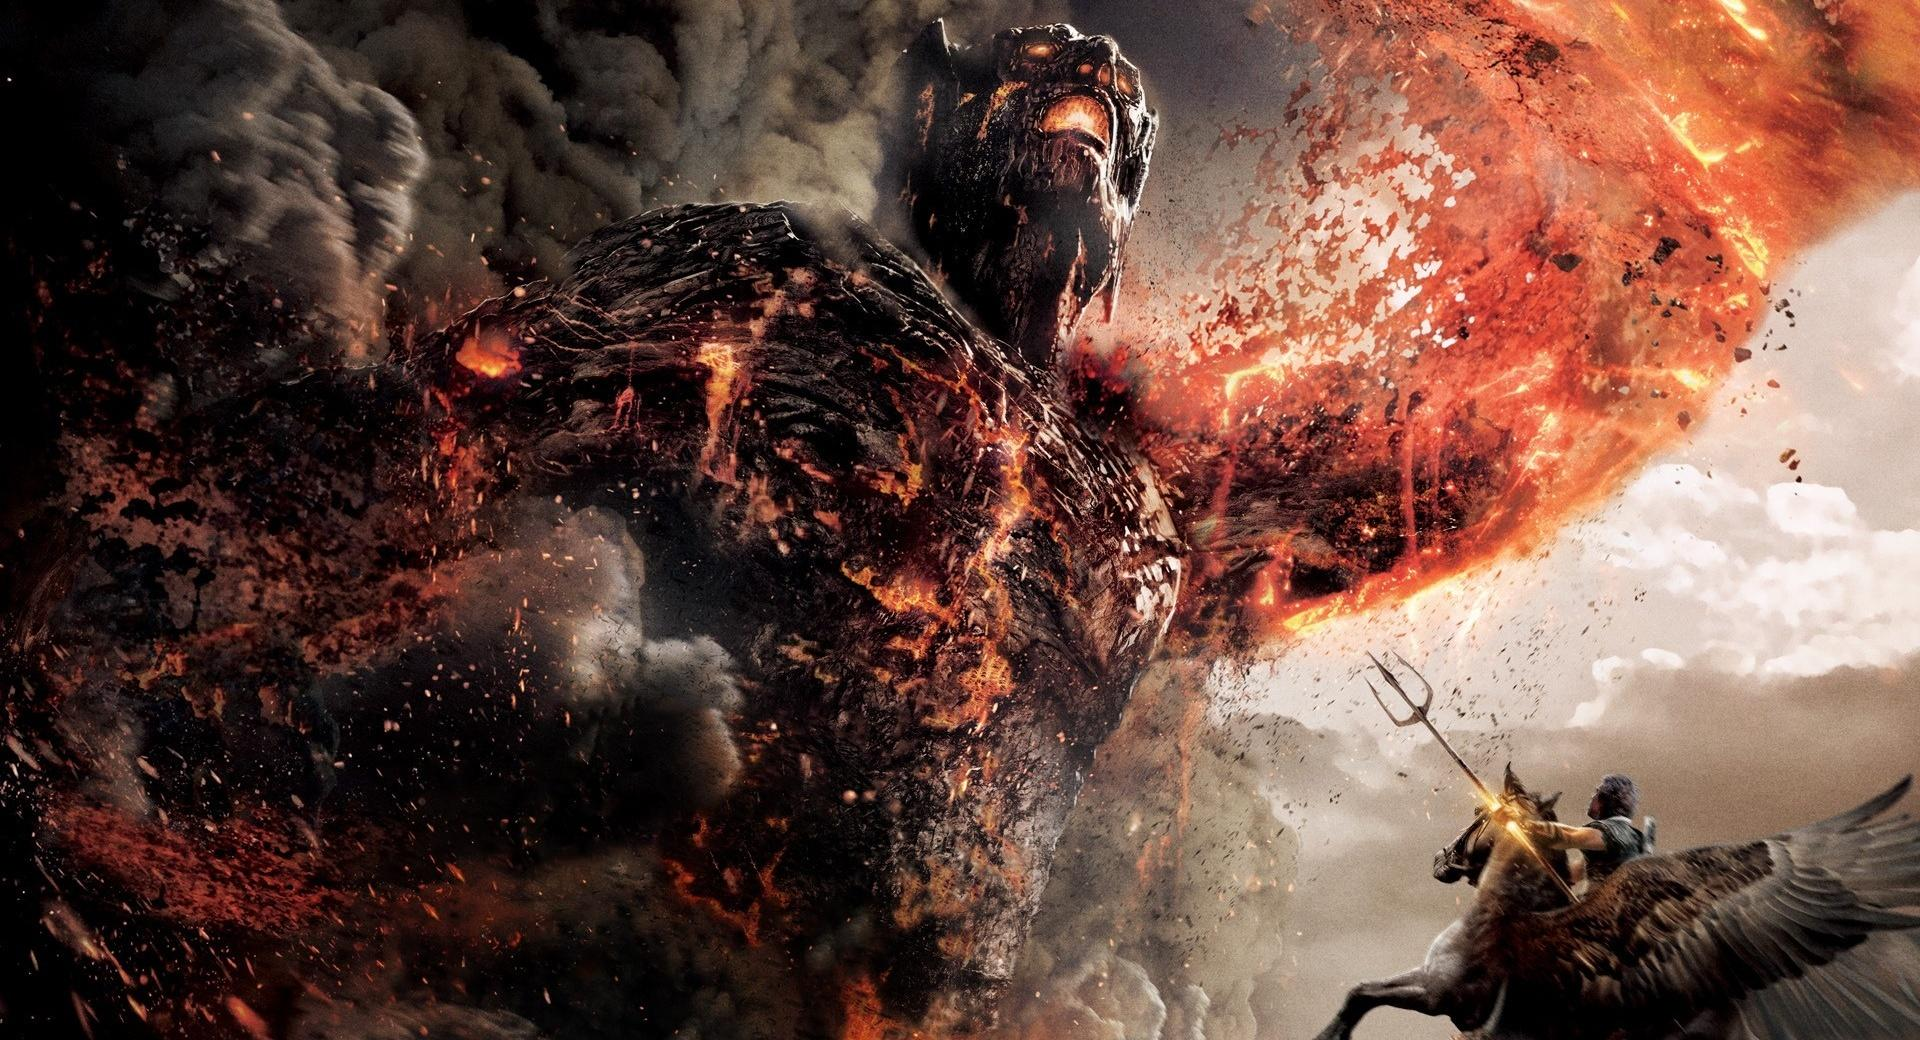 Wrath of the Titans (2012) wallpapers HD quality